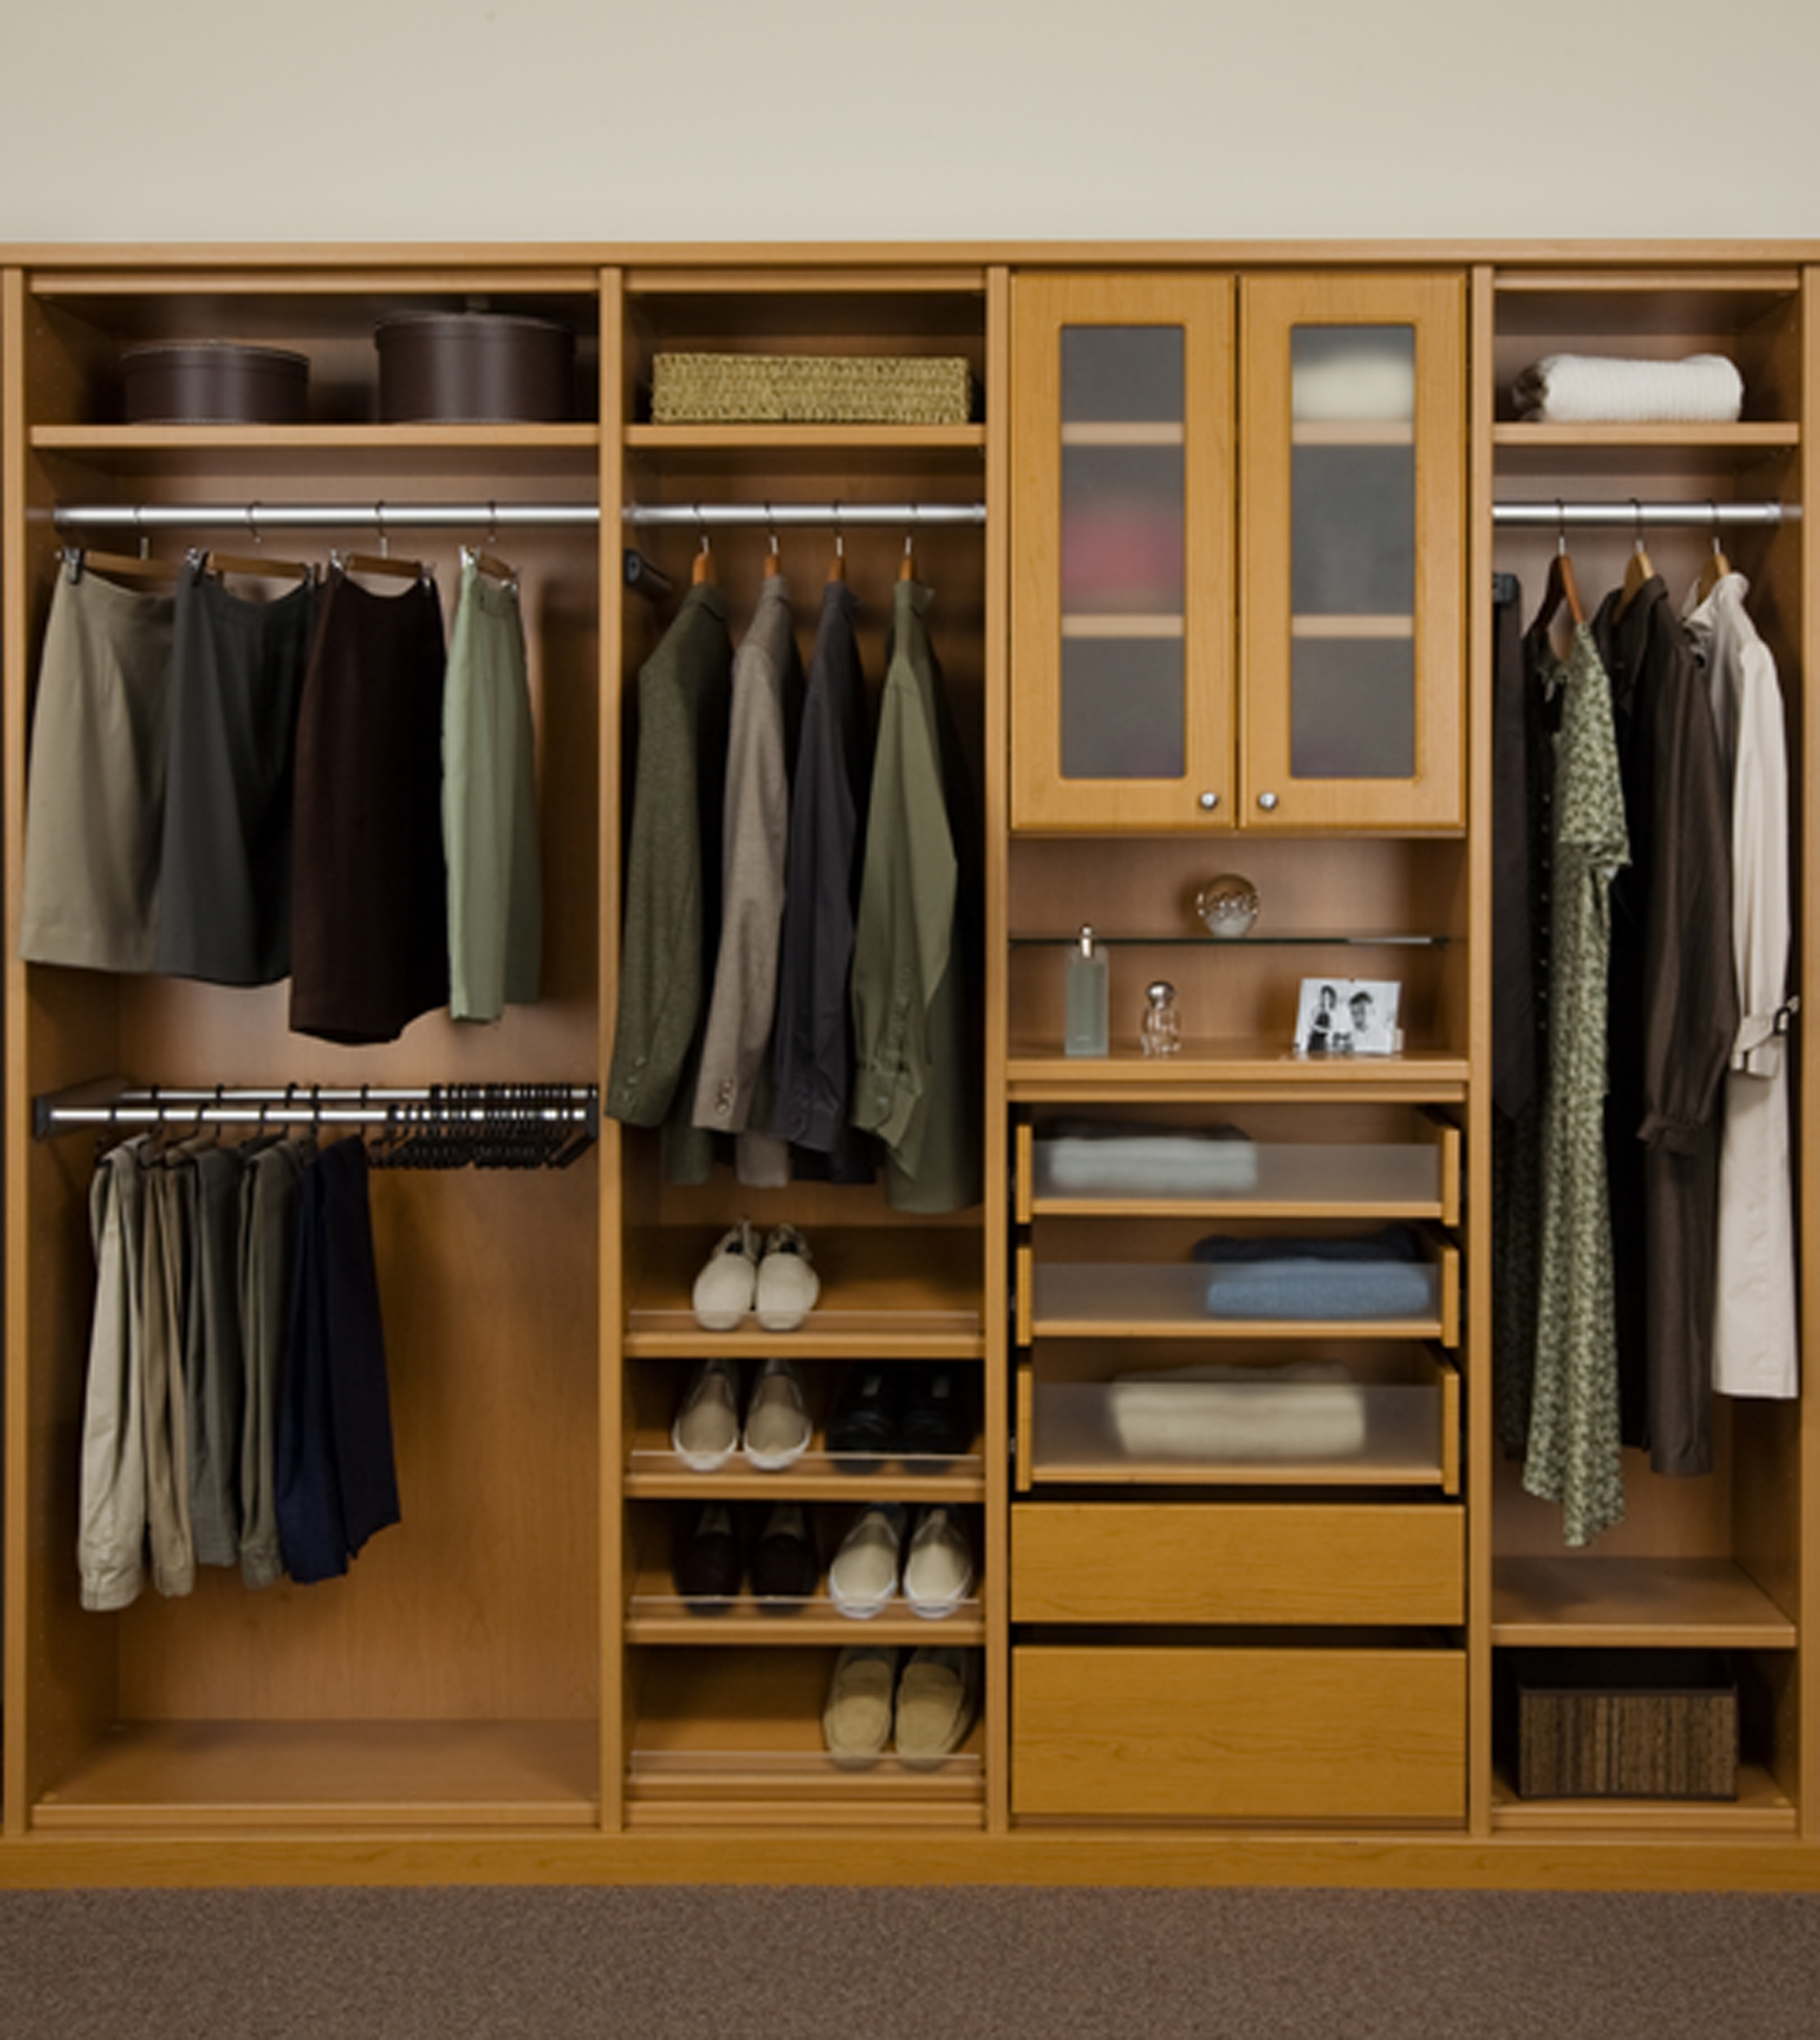 Closet Installation Lowes | Lowes Plastic Shelves | Lowes Wire Shelving